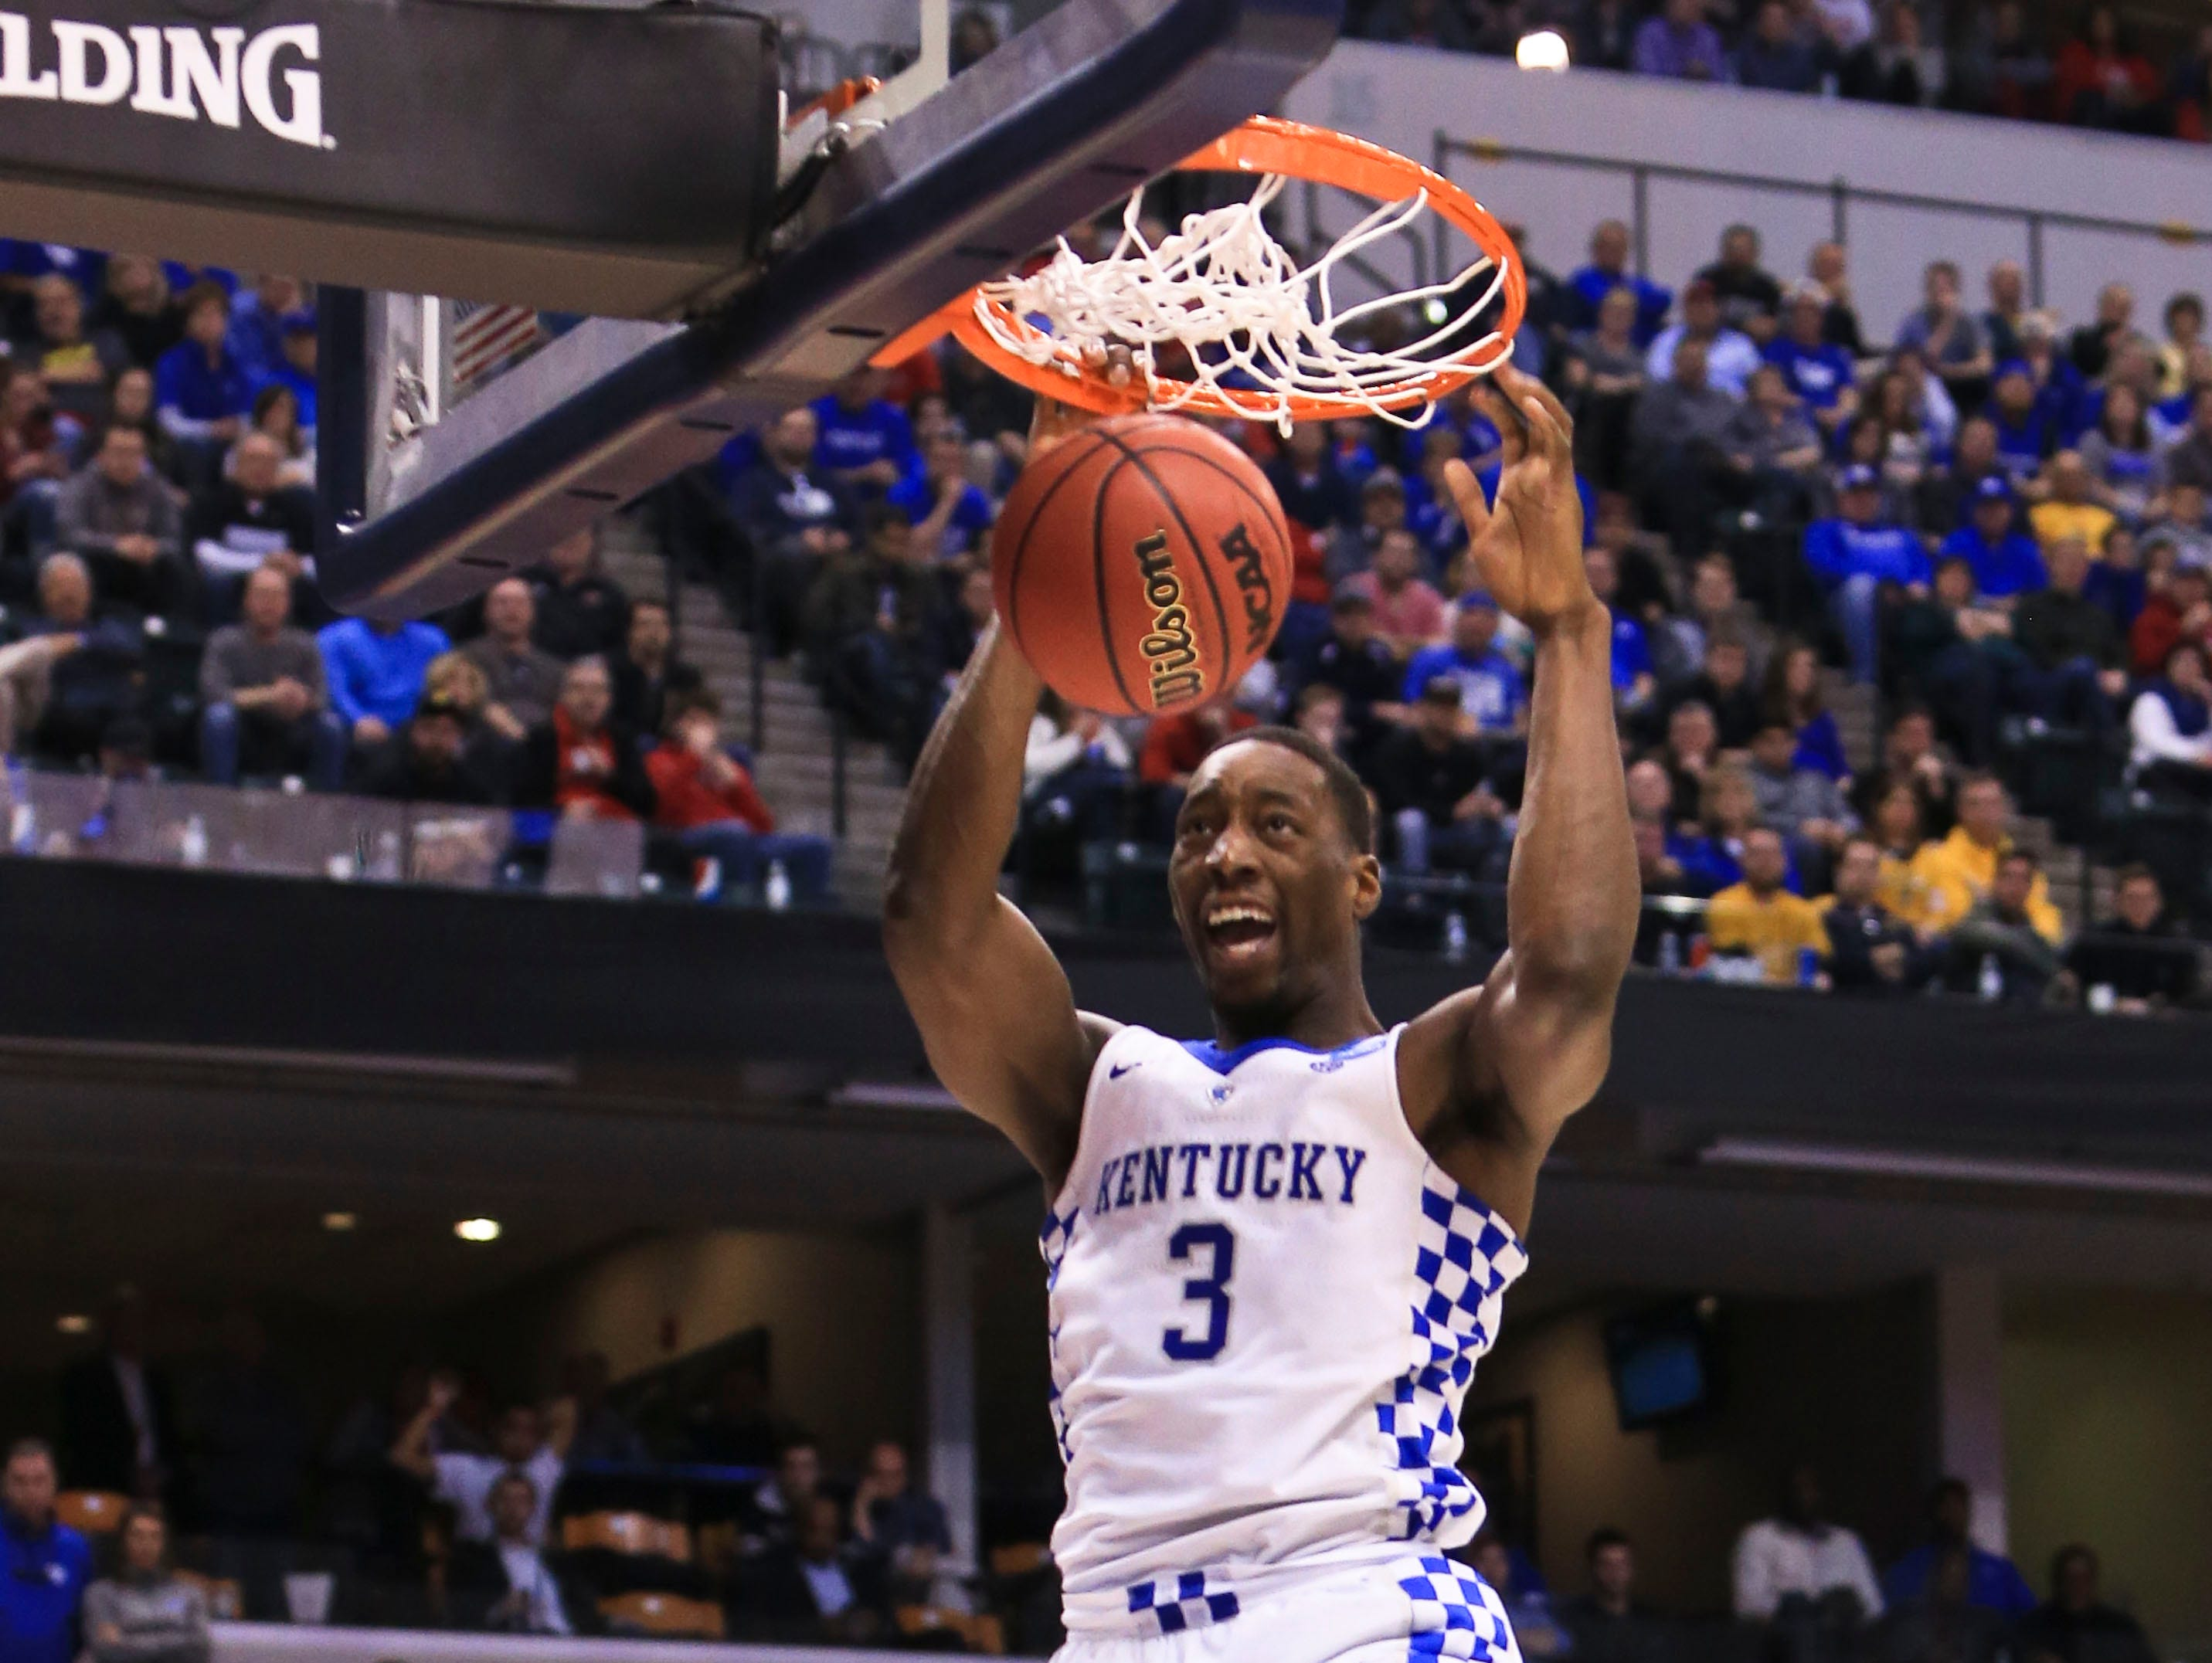 Kentucky's Bam Adebayo slams down two of his 13 points to go along with his 10 rebounds as the Wildcats won 65-62 in the second NCAA game Sunday in Indianapolis. The Cats head to Memphis for the NCAA Sweet 16.